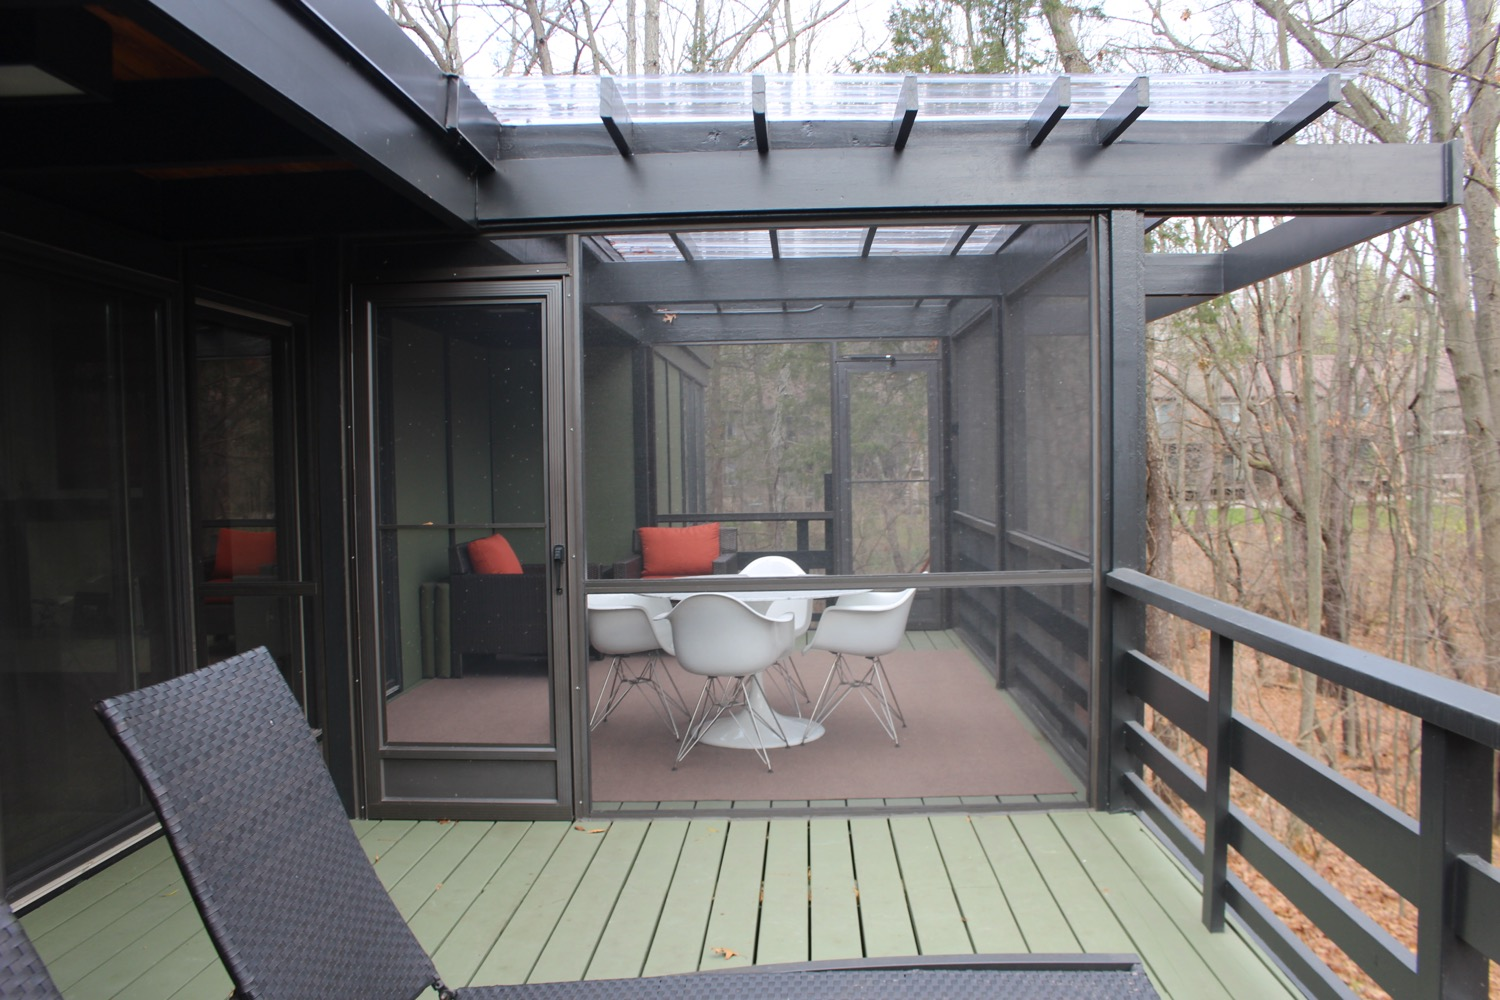 BACK DECK OFF LIVING ROOM WITH TRELLIS OVERHANG AND SCREENED PORCH